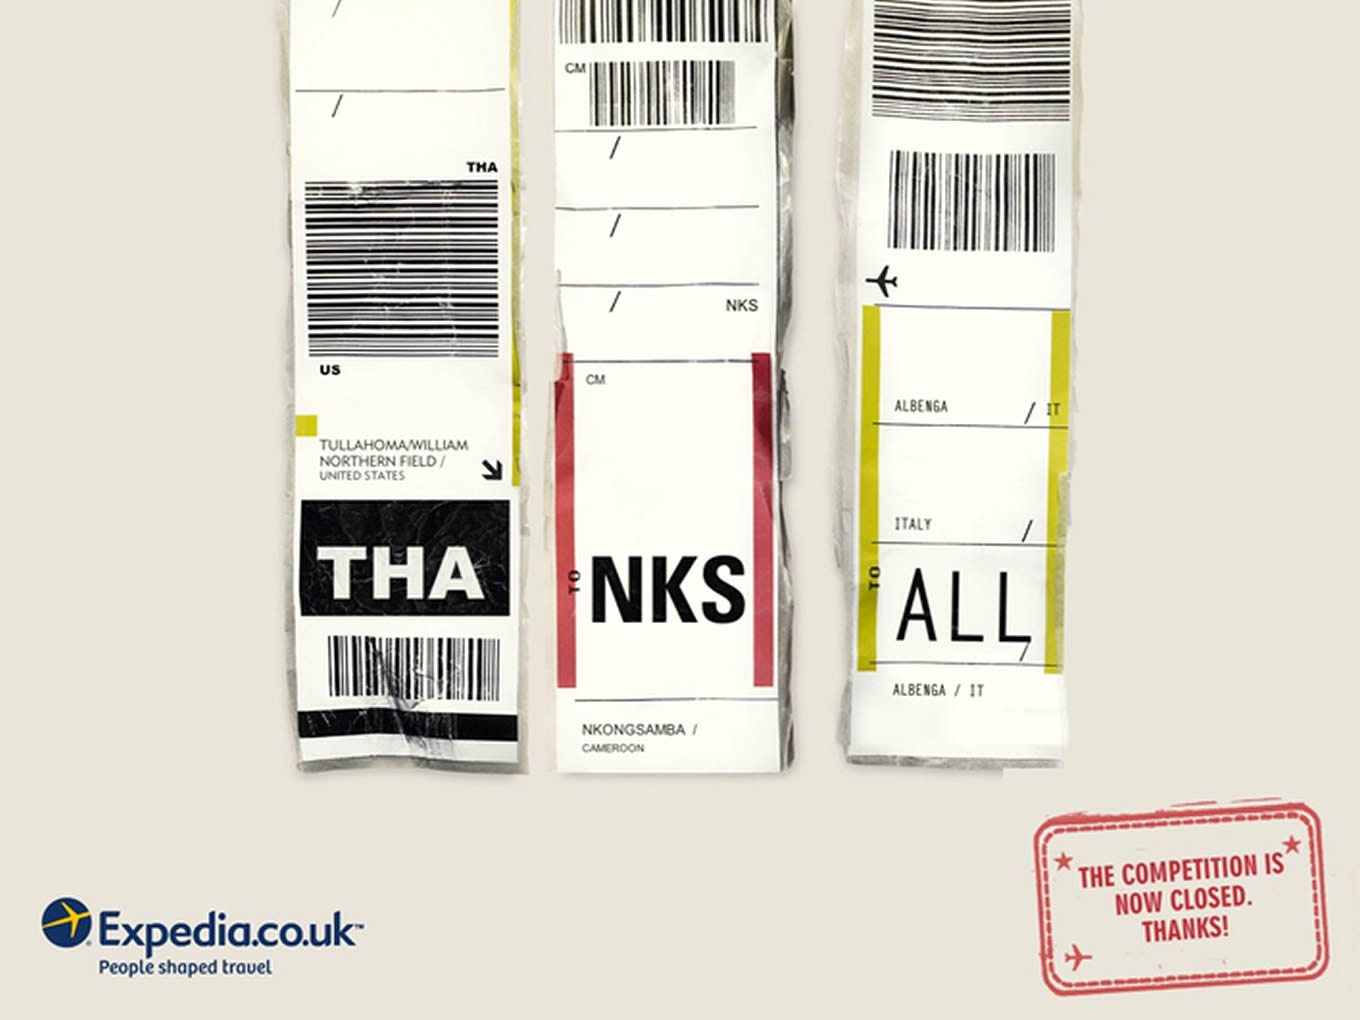 Thank You Airport Code, Luggage Tags Marketing Campaign by Expedia UK